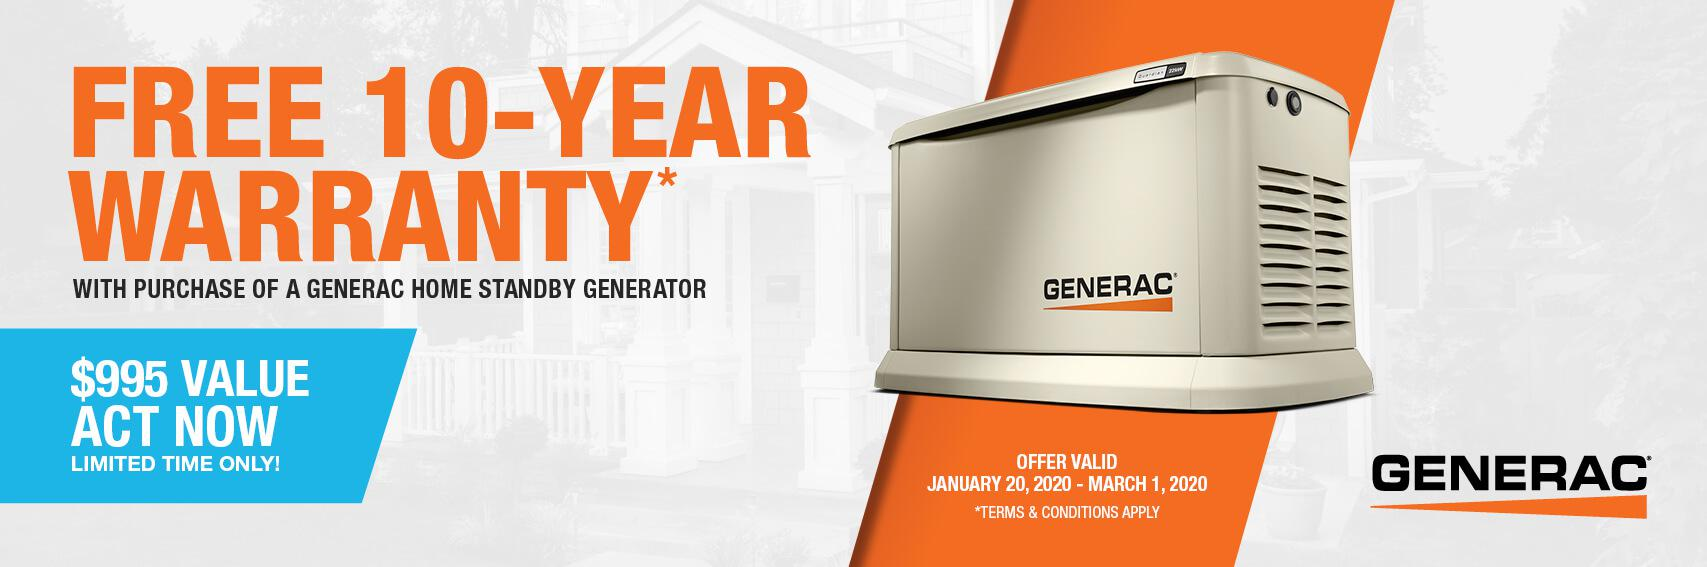 Homestandby Generator Deal | Warranty Offer | Generac Dealer | Fort Atkinson, WI